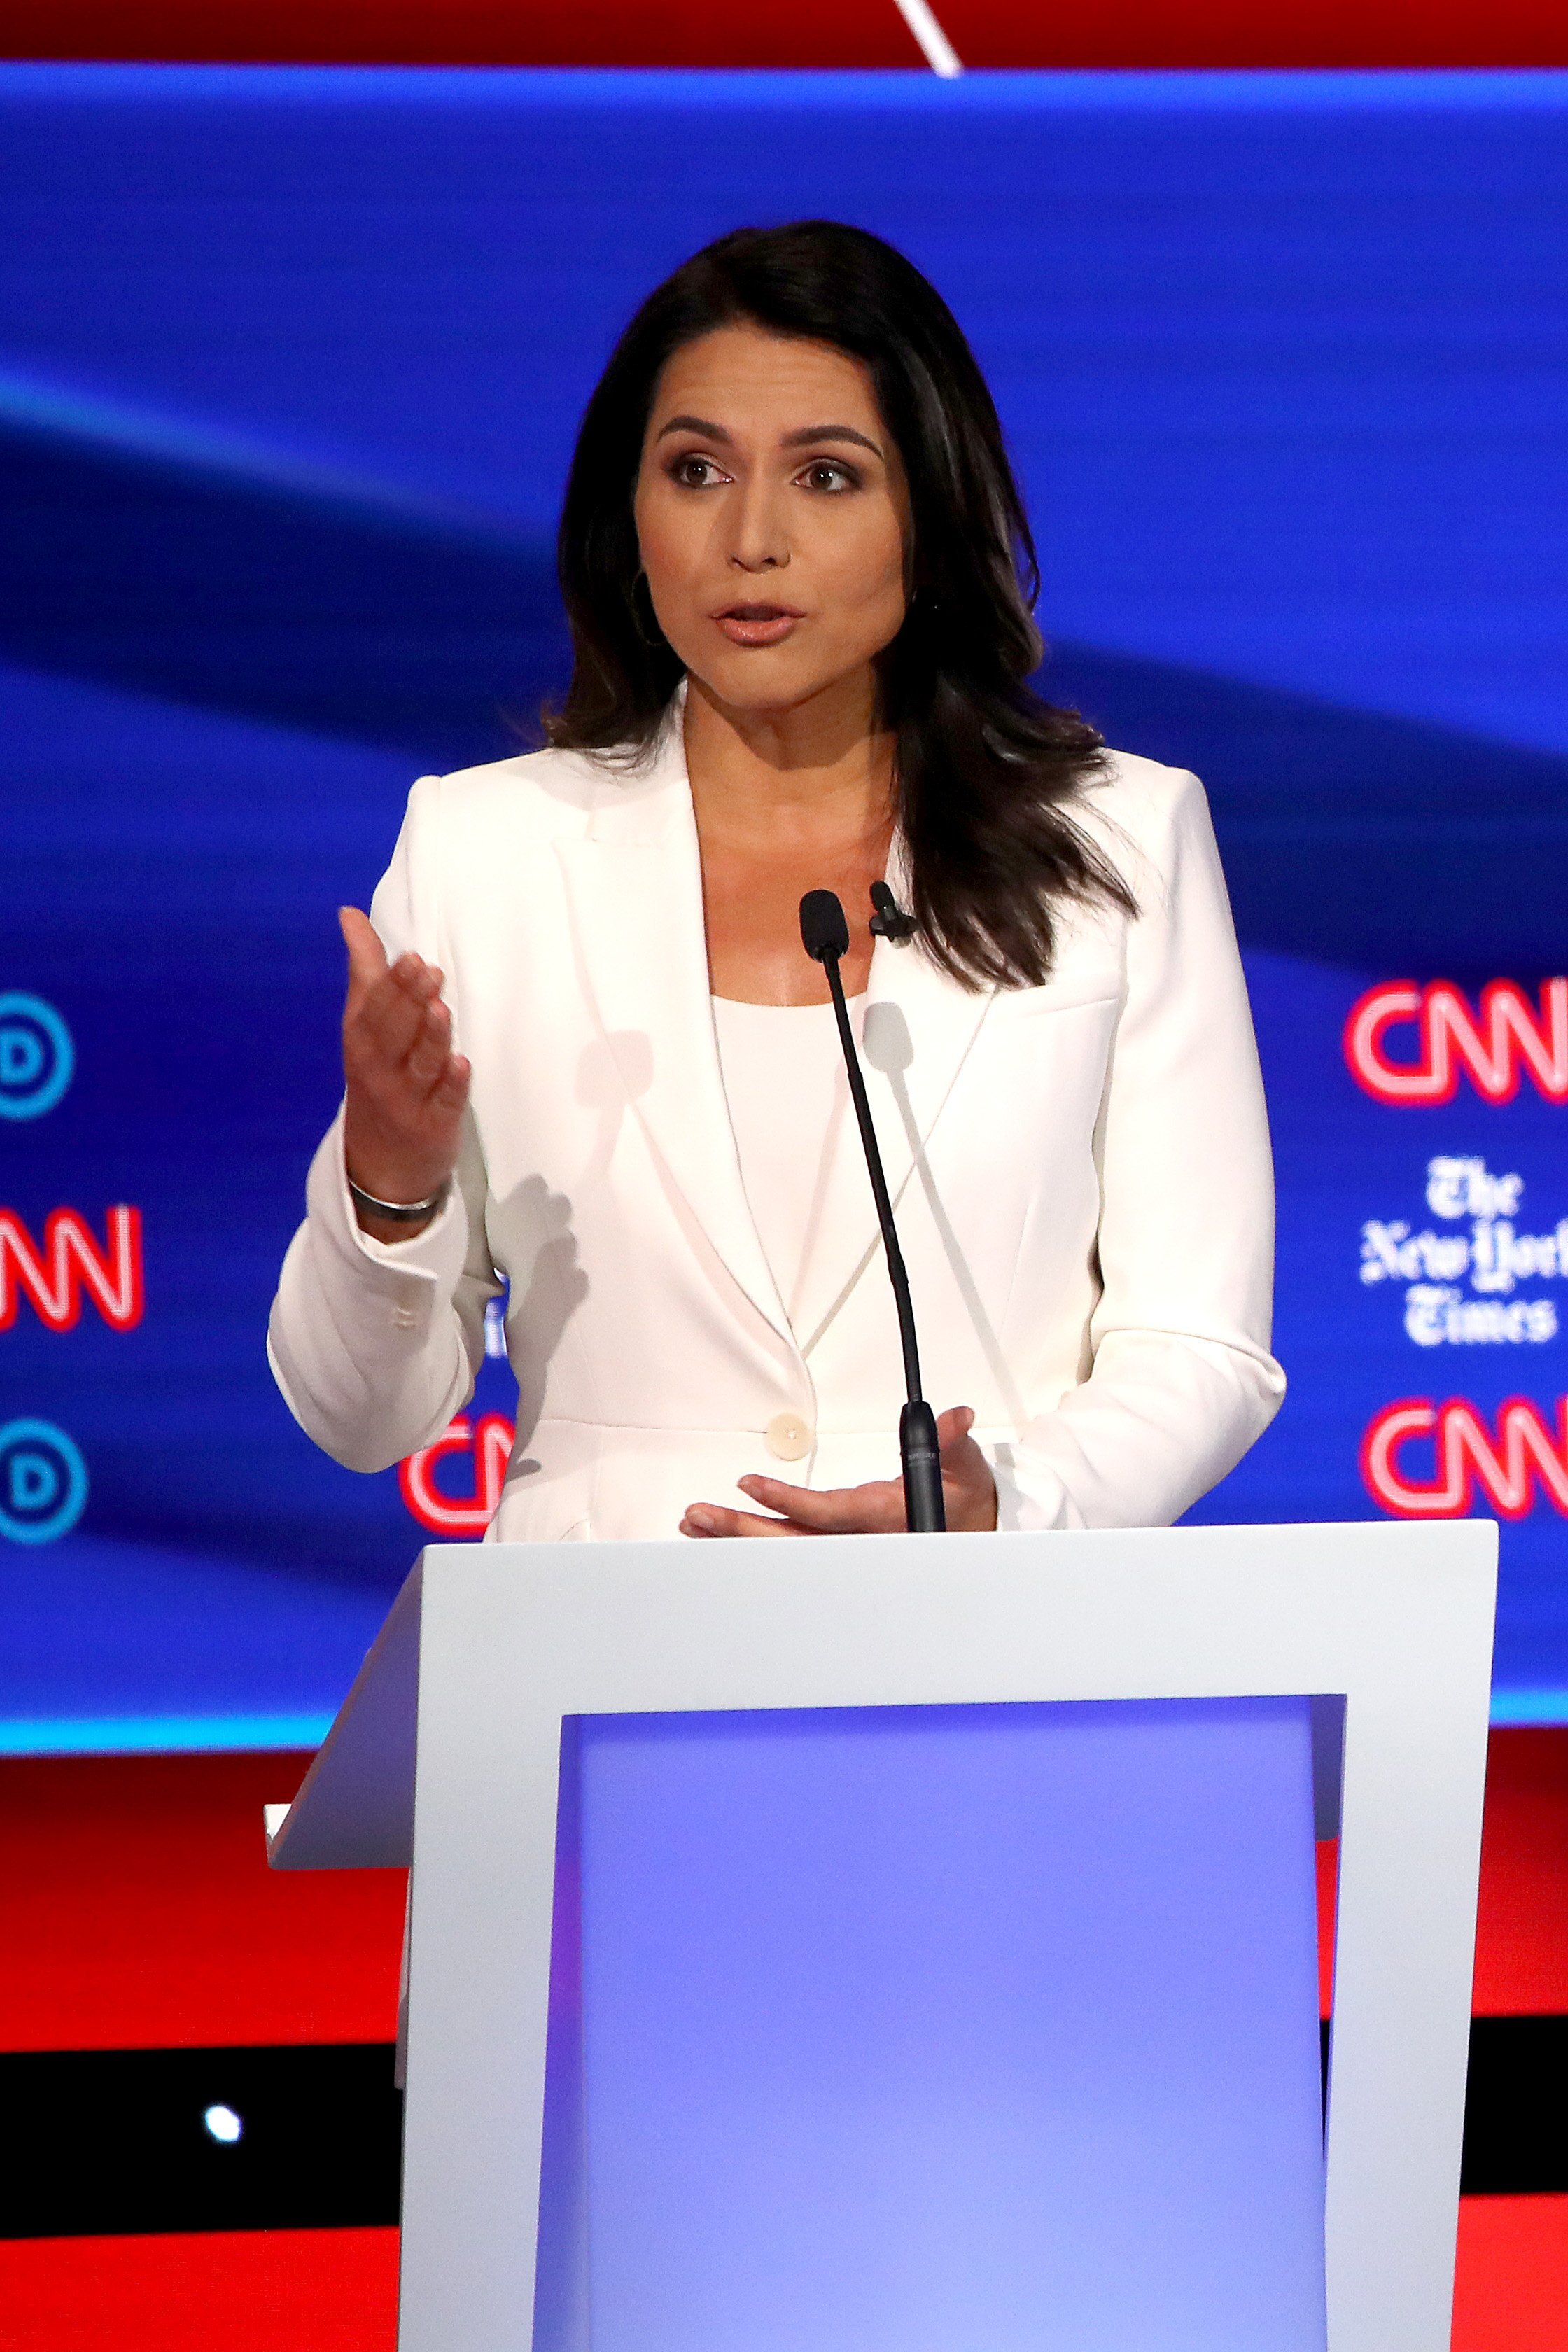 Tulsi Gabbard's Clinton clash sparks speculation about her political future